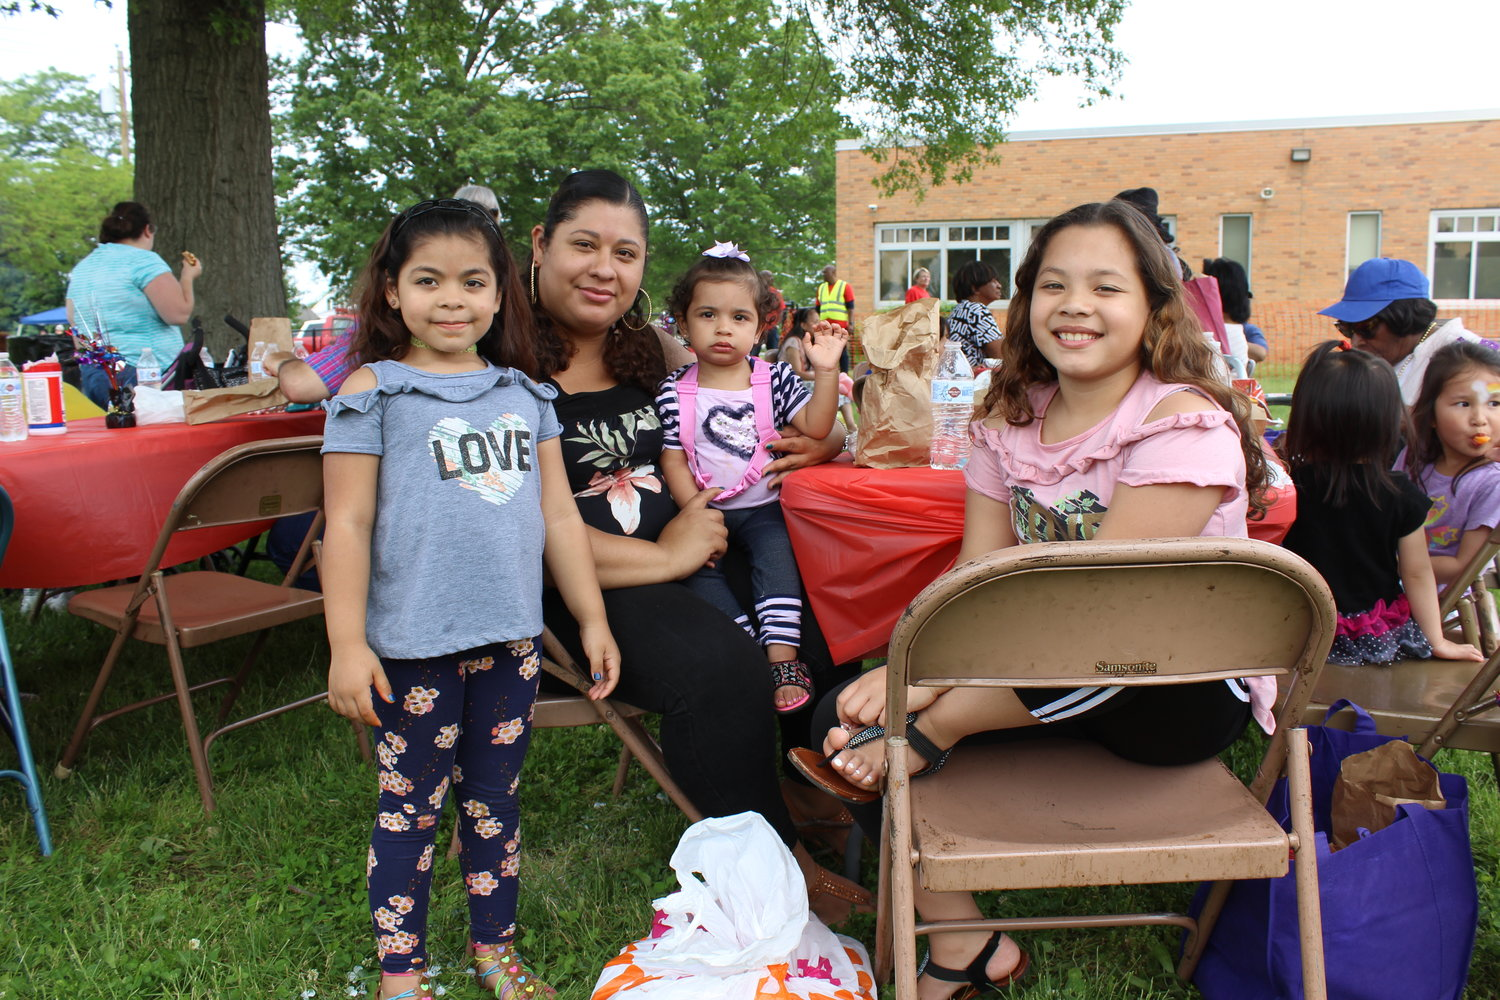 DaMary Ruiz, second-from-left, watched live music with her children Carolina, 5, Carmen, 1, and Genesis, 9.